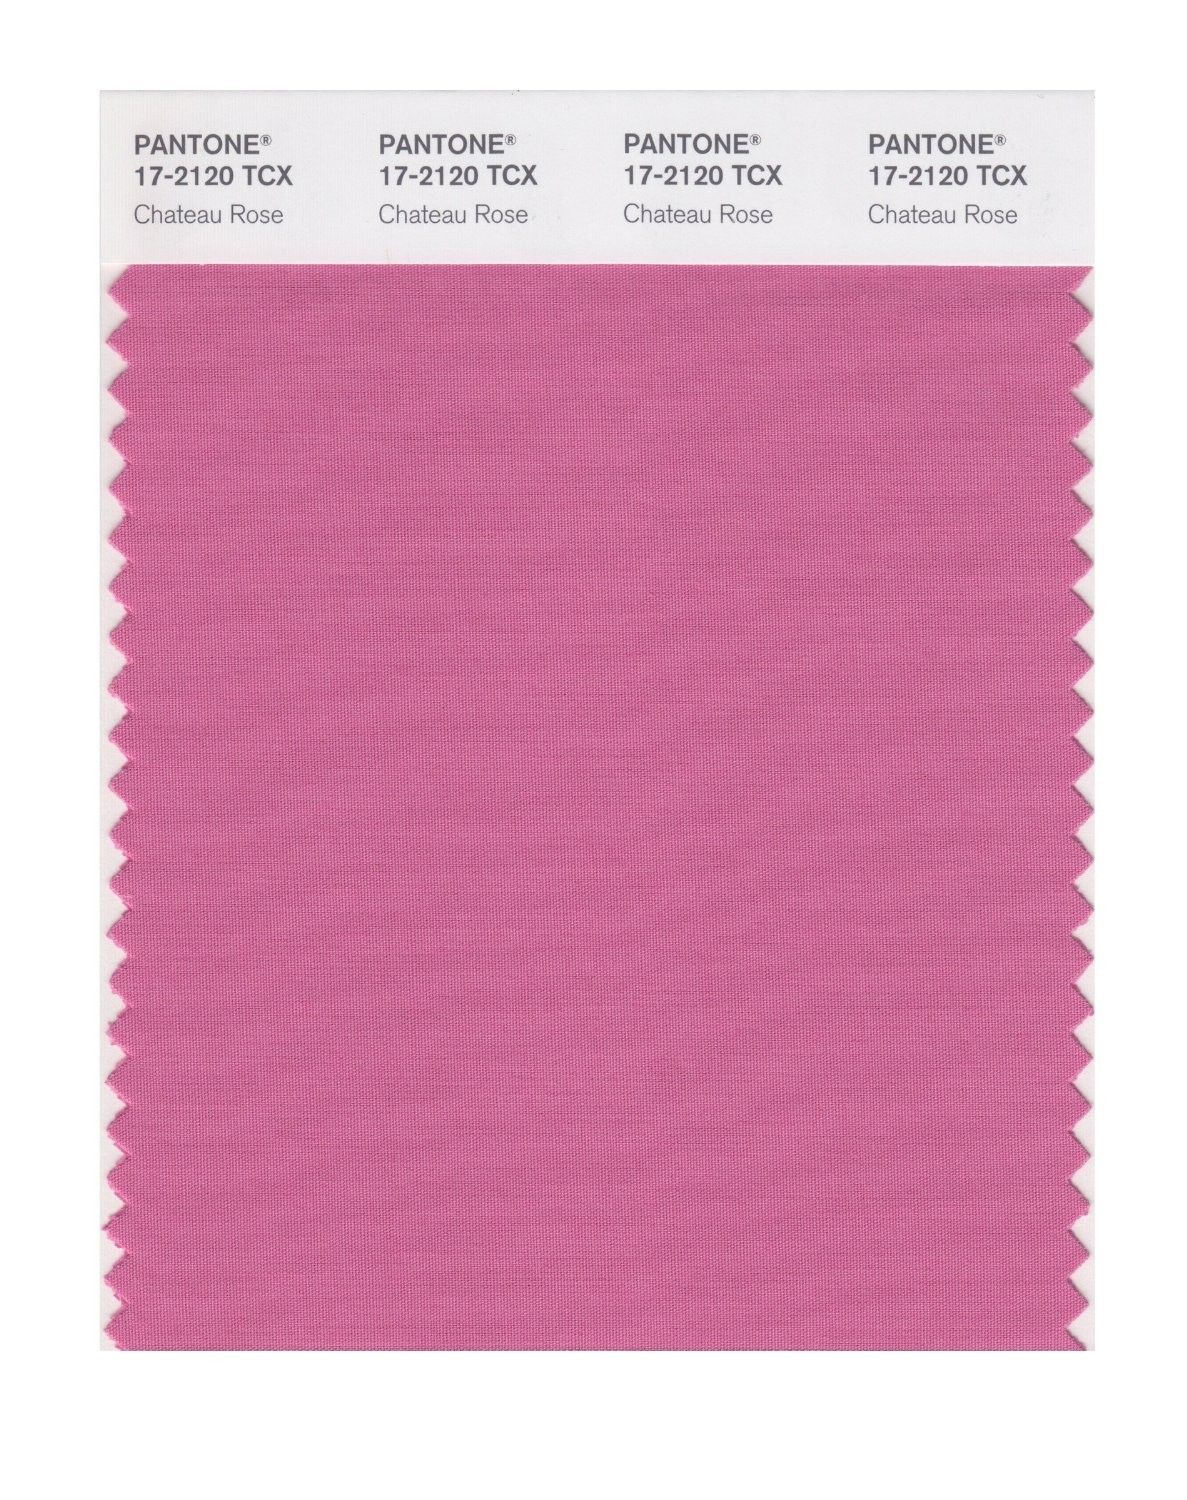 Pantone 17-2120 TCX Swatch Card Chateau Rose